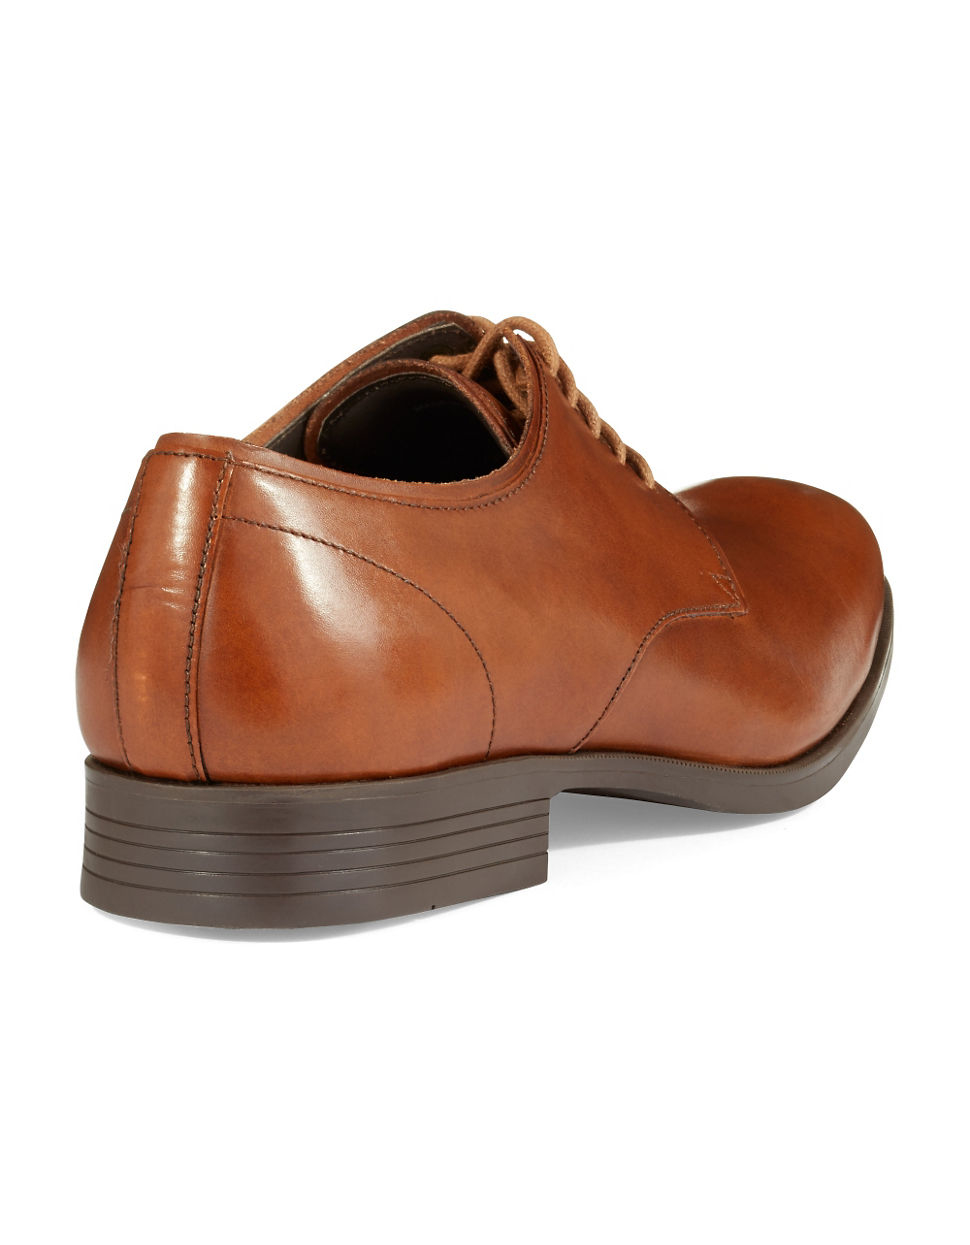 British Tan Leather Shoes